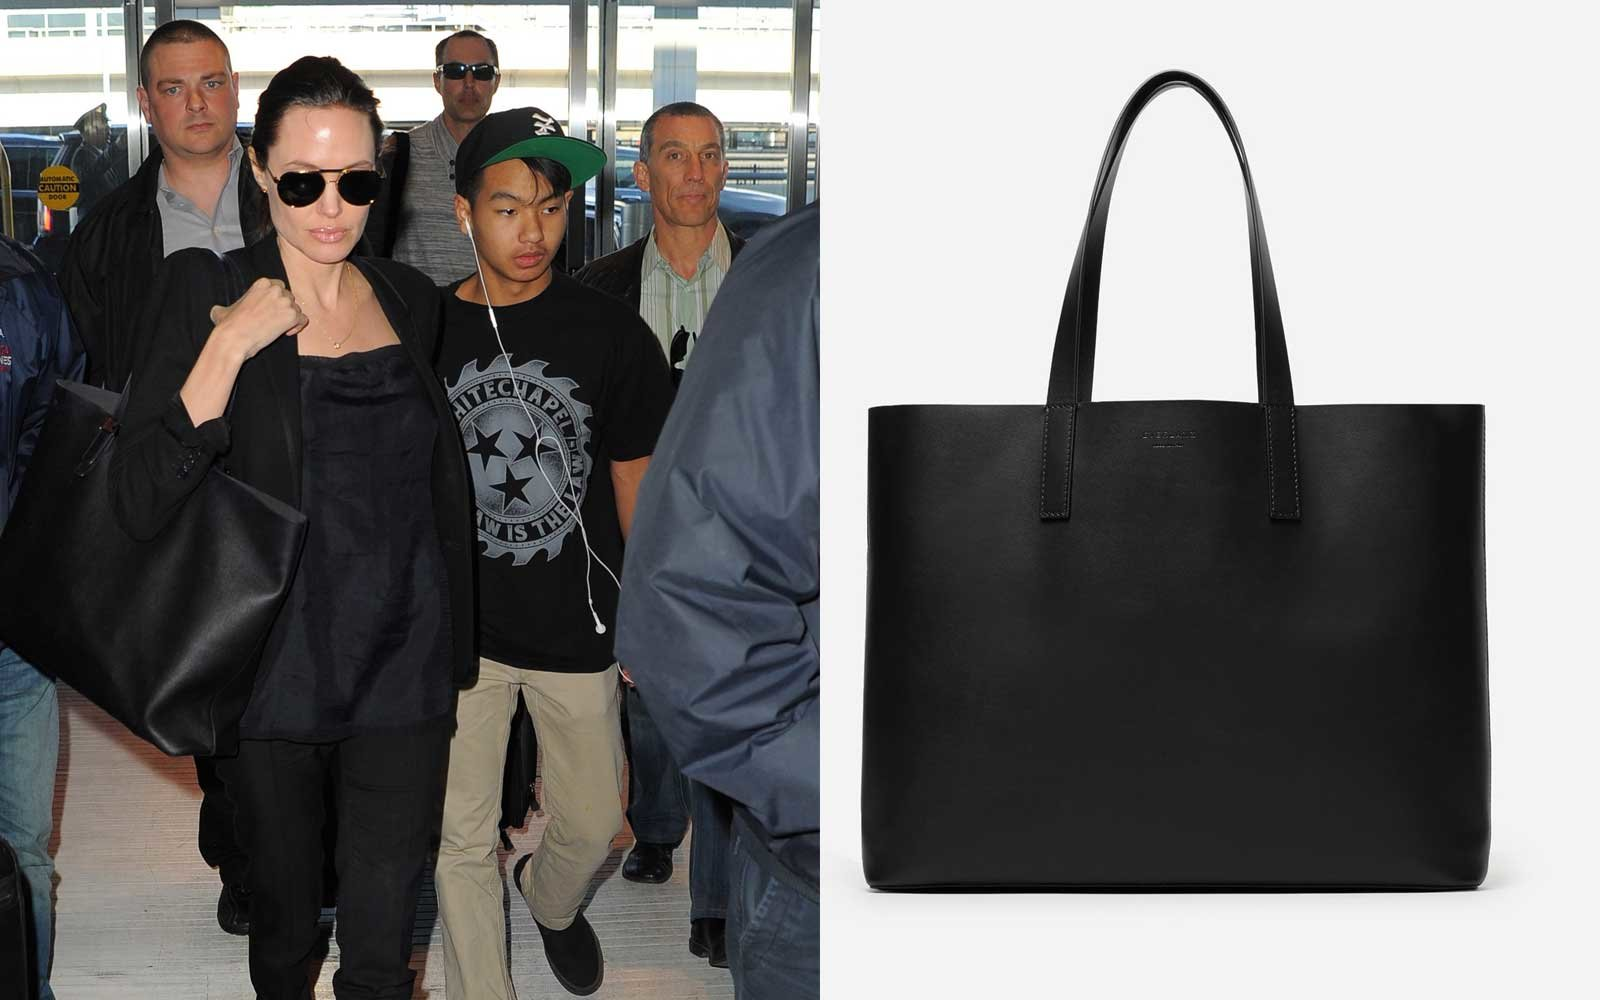 a4daae7990a4 Celebrities  Favorite Handbags to Travel With